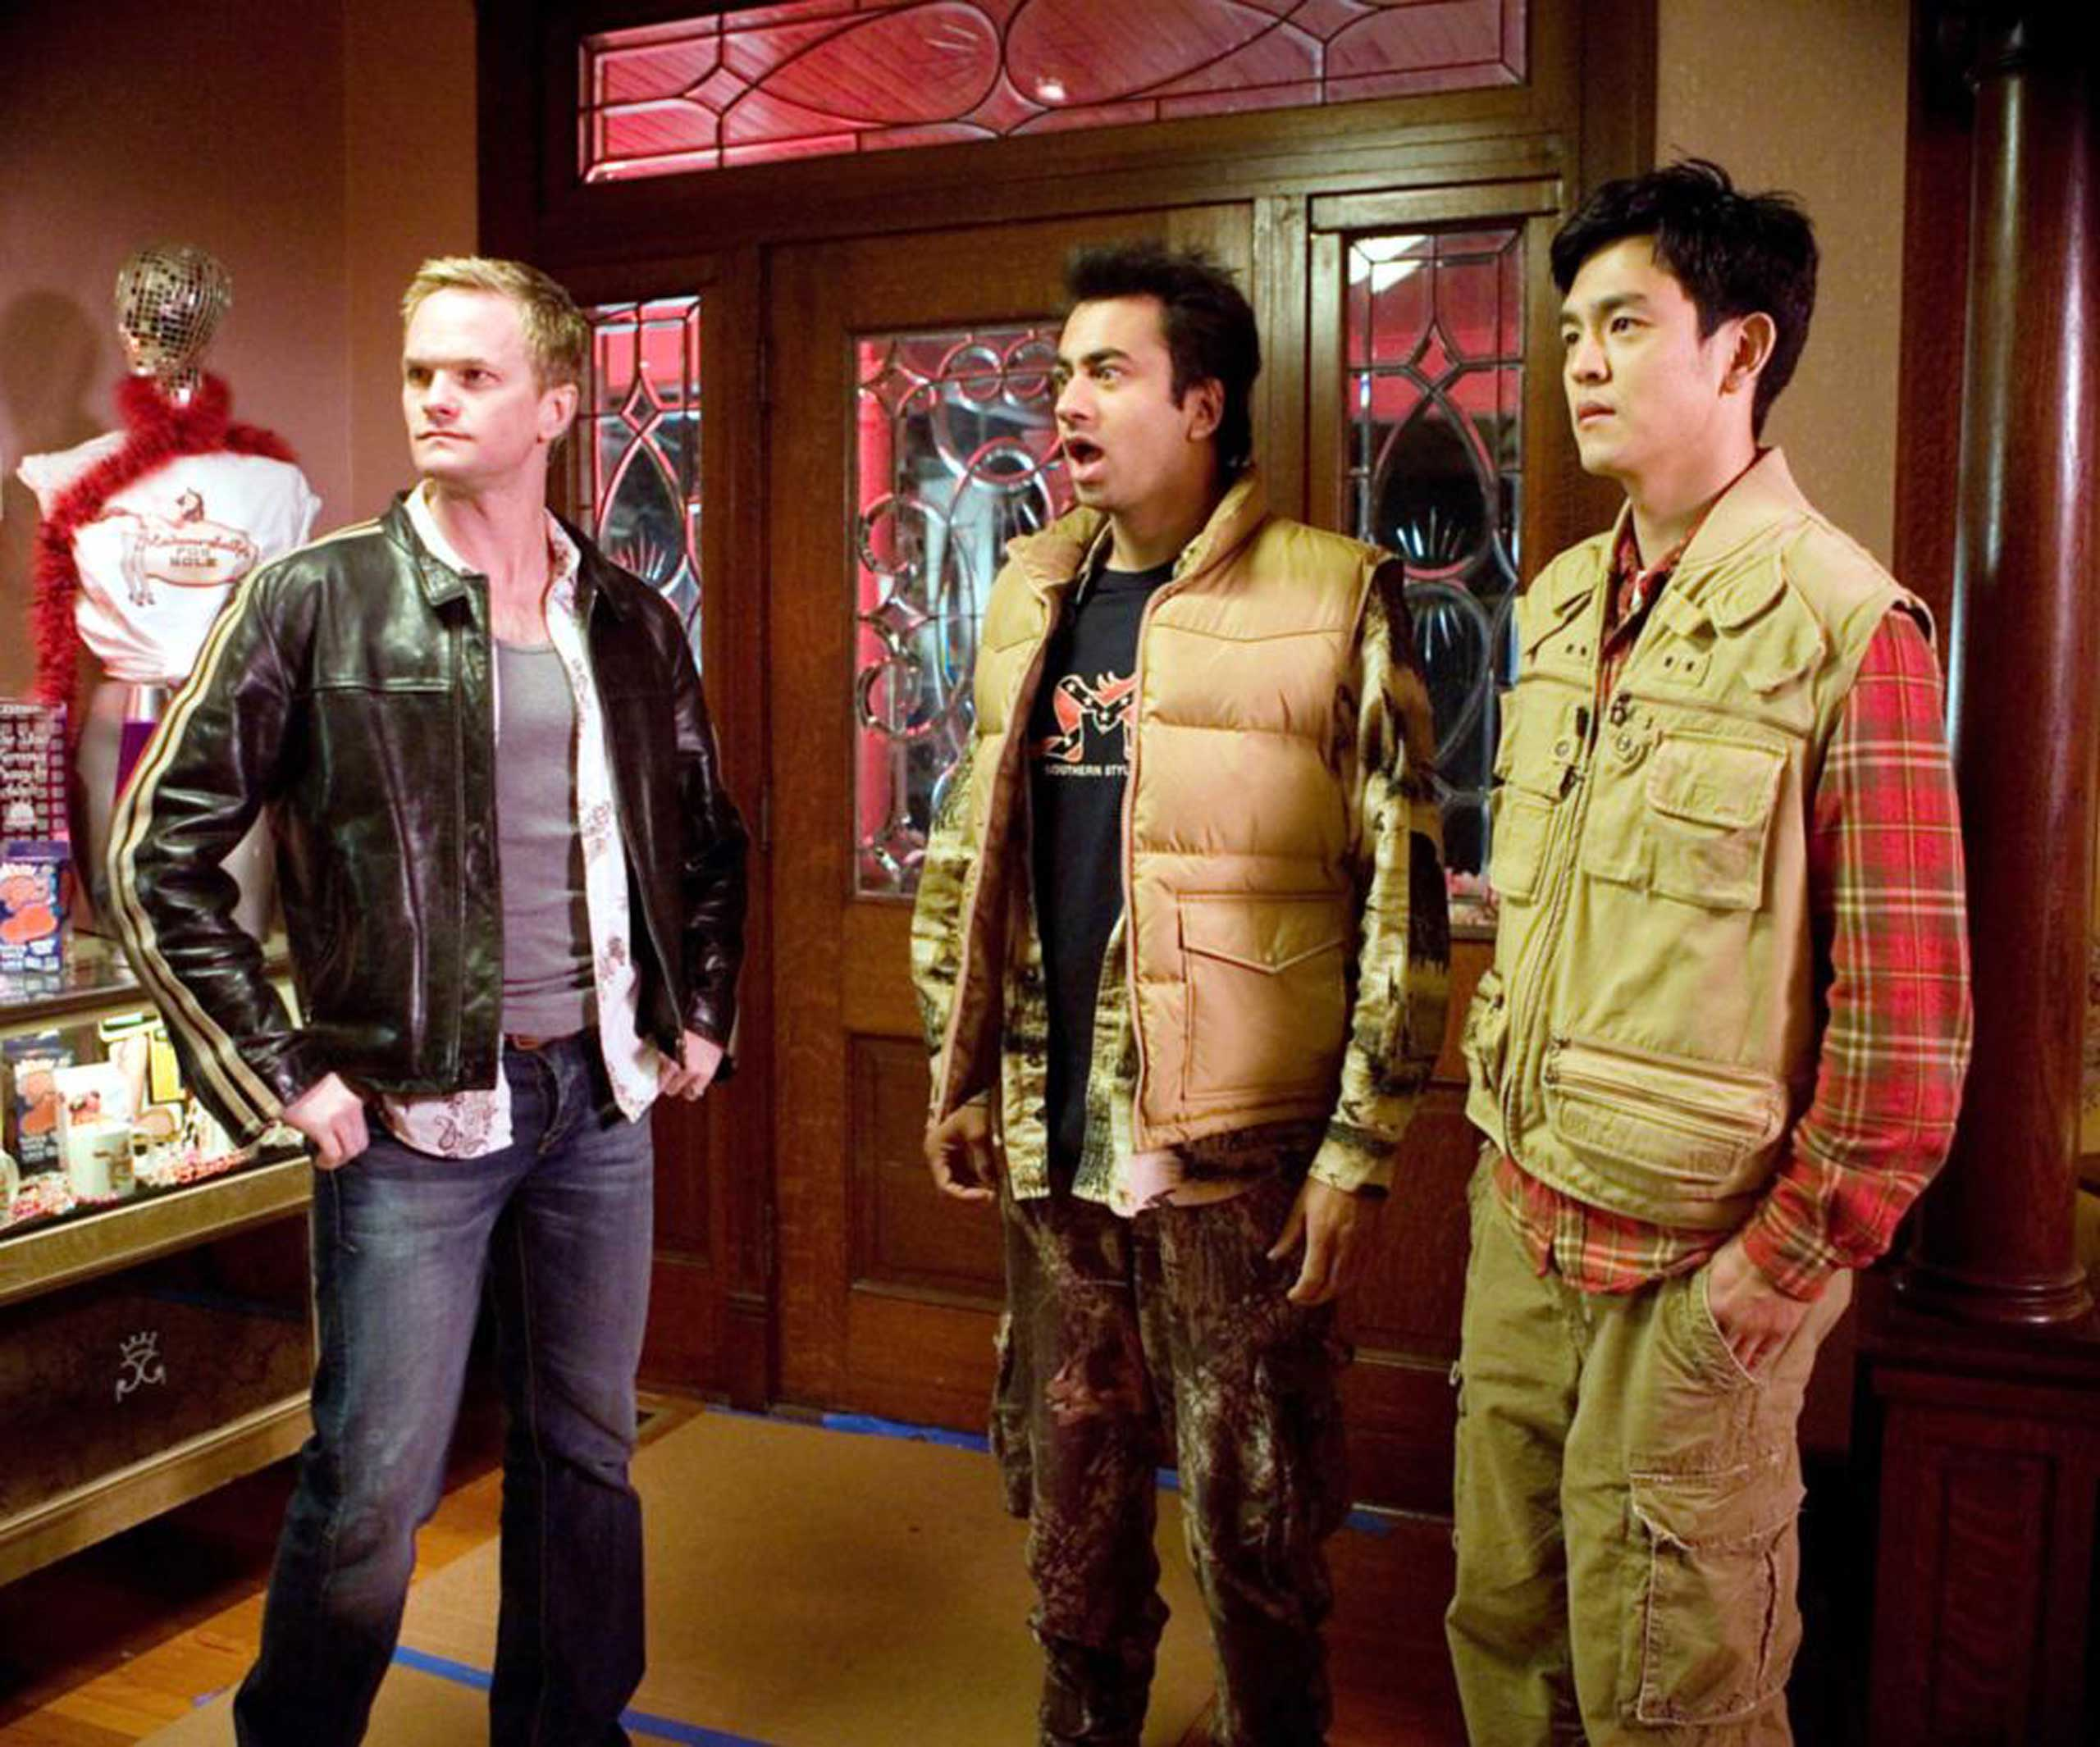 Neil Patrick Harris played a version of himself—or at least a washed up, beer guzzling, mushroom-tripping version of himself—in Harold and Kumar Escape From Guantanamo Bay in 2008.